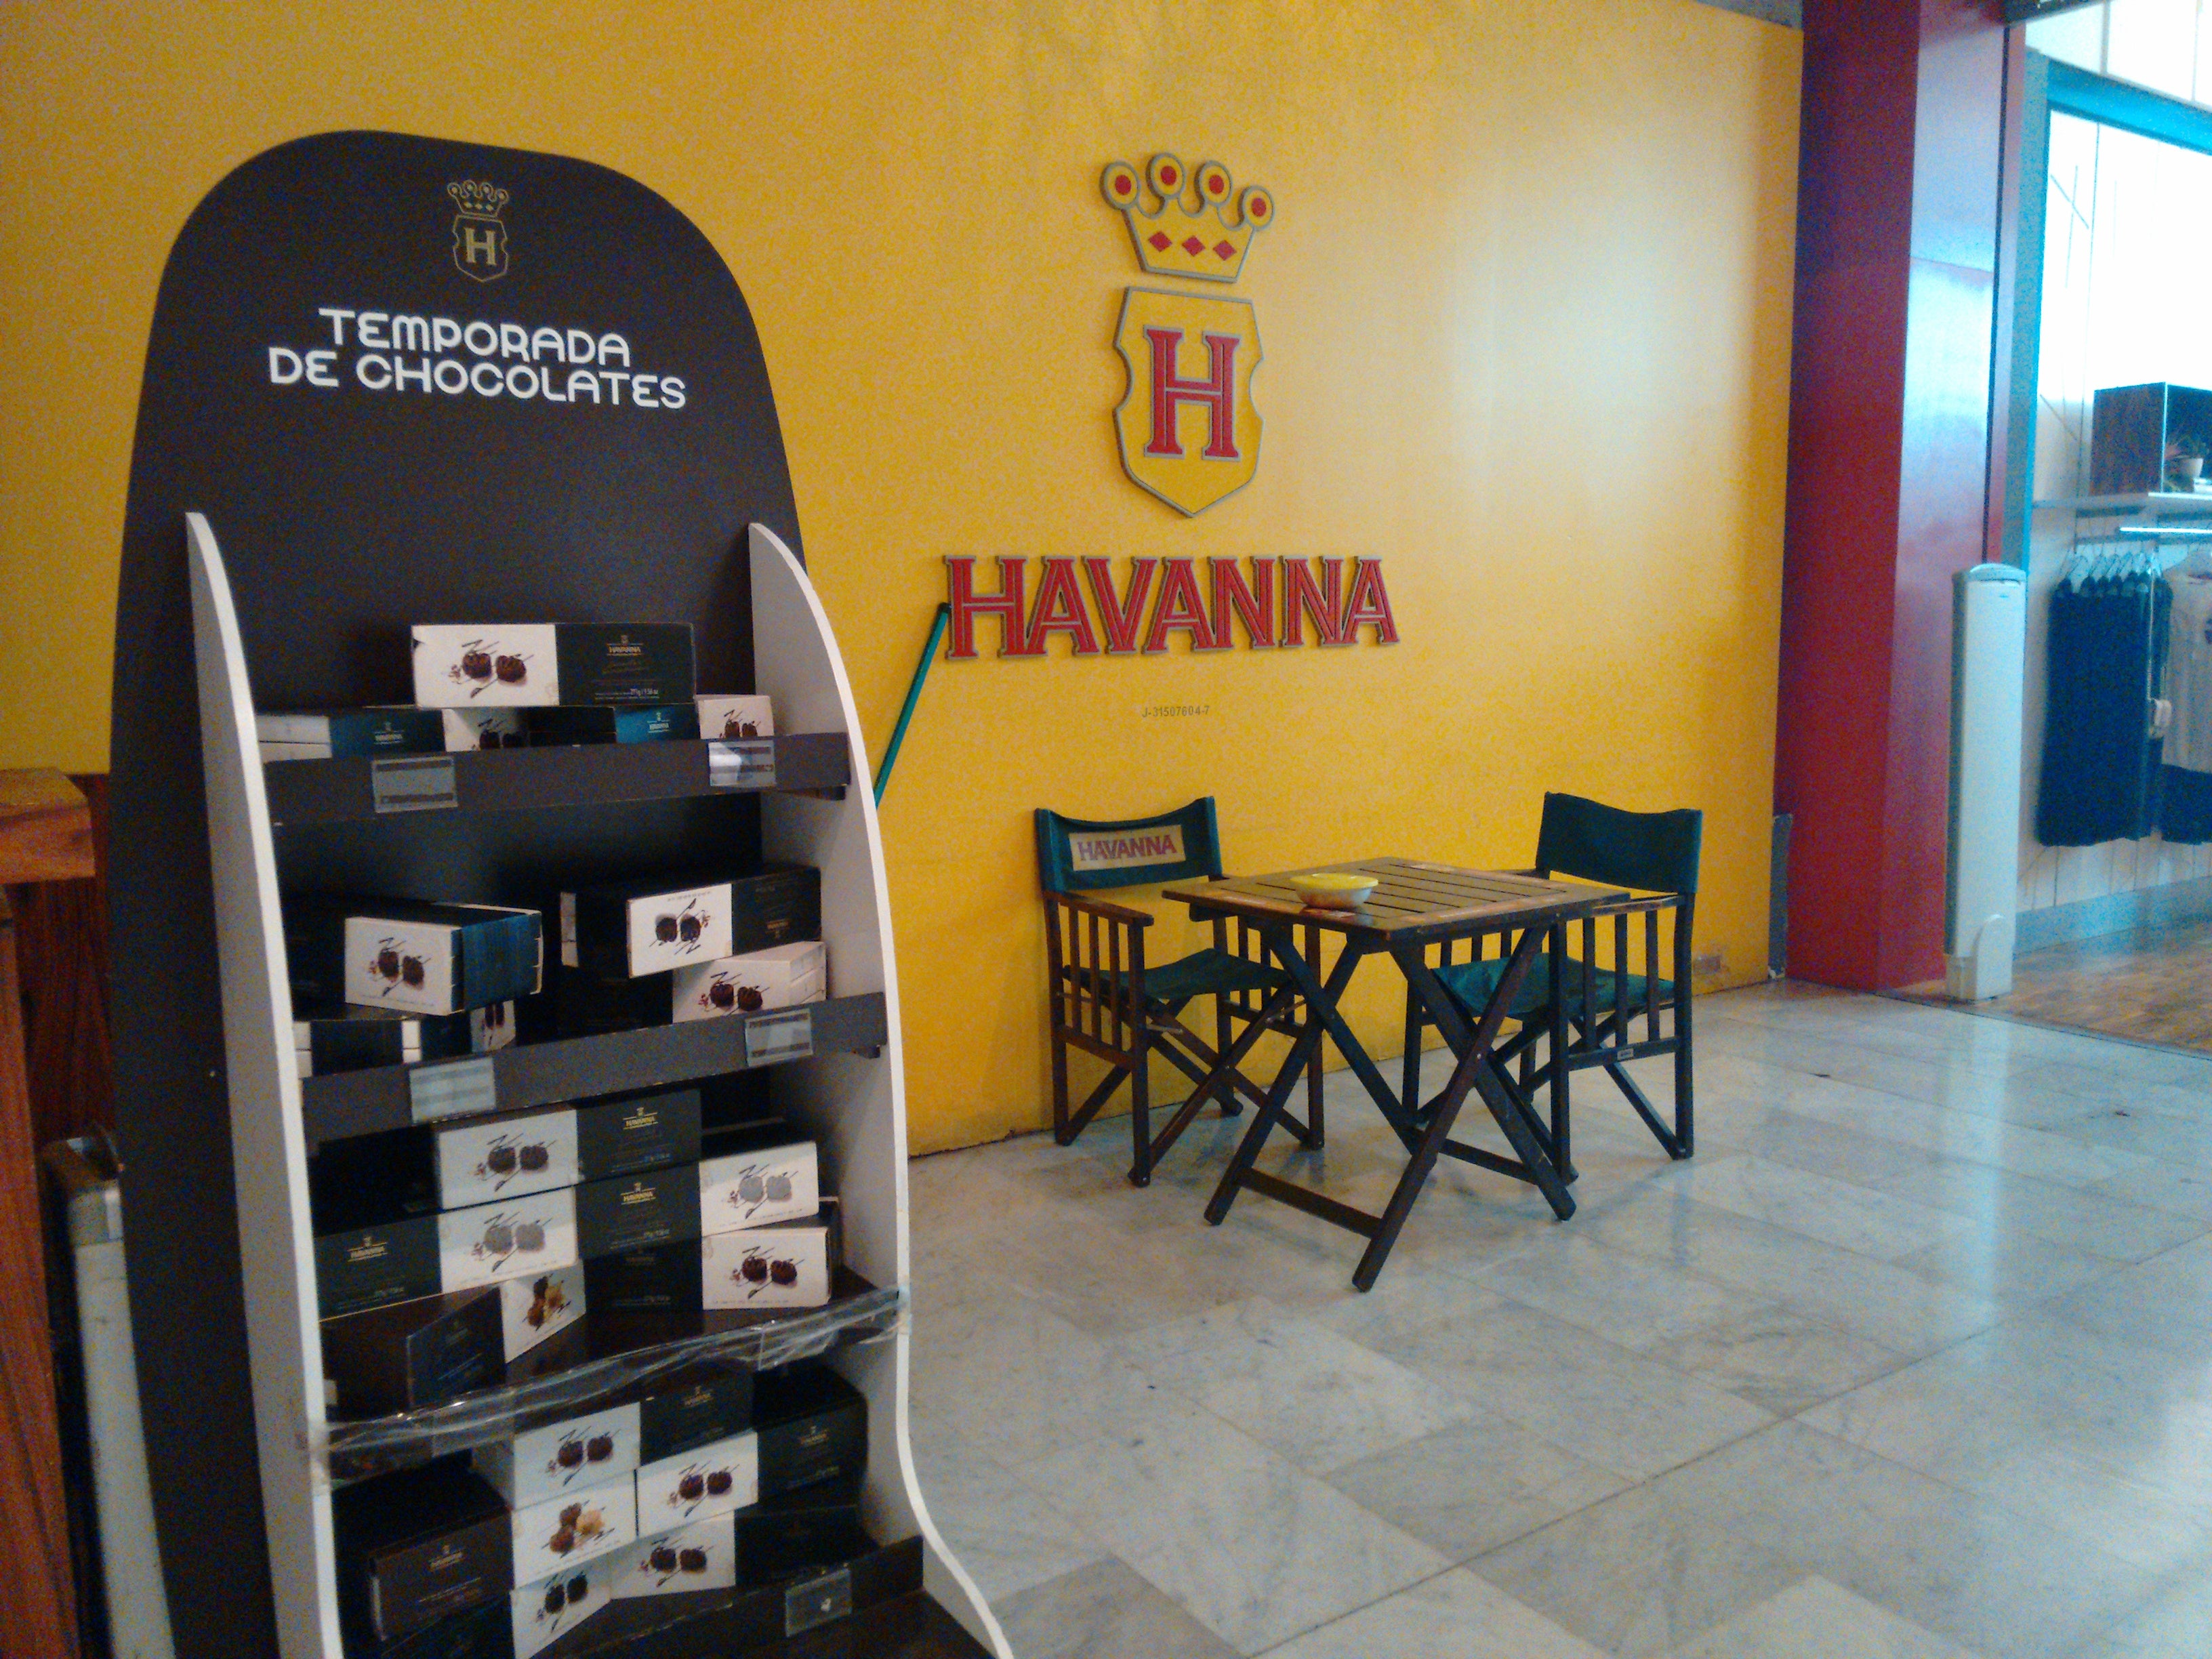 Tourism in Havanna Cafe